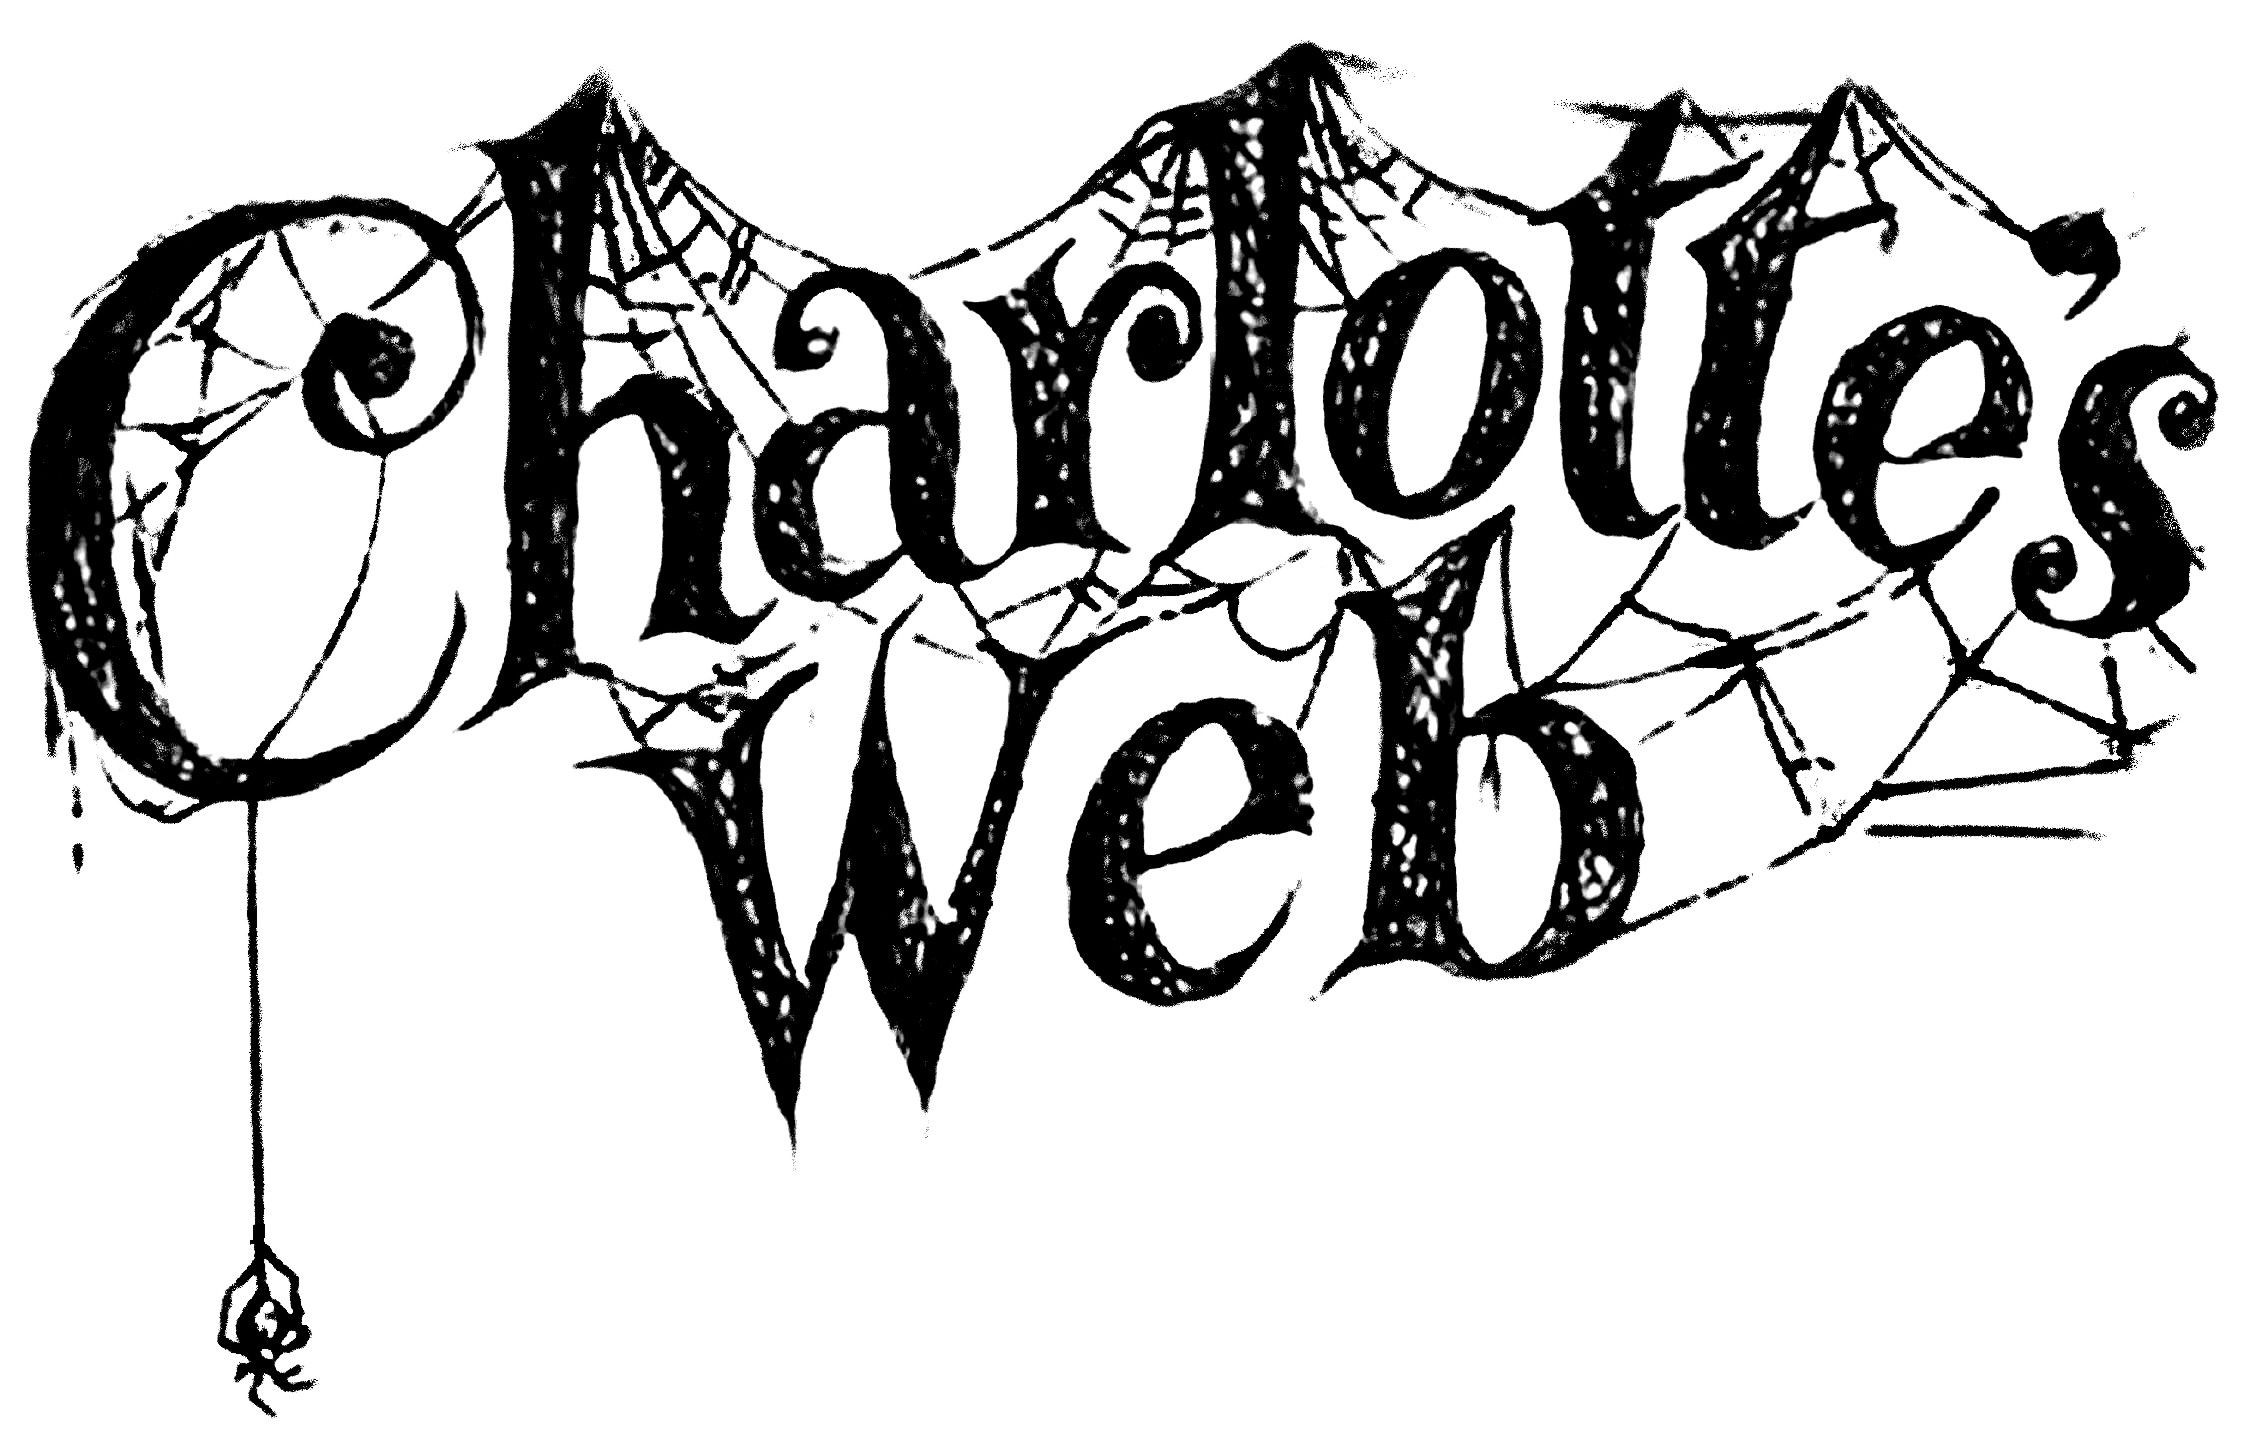 Charlottes web clipart 5 » Clipart Station.